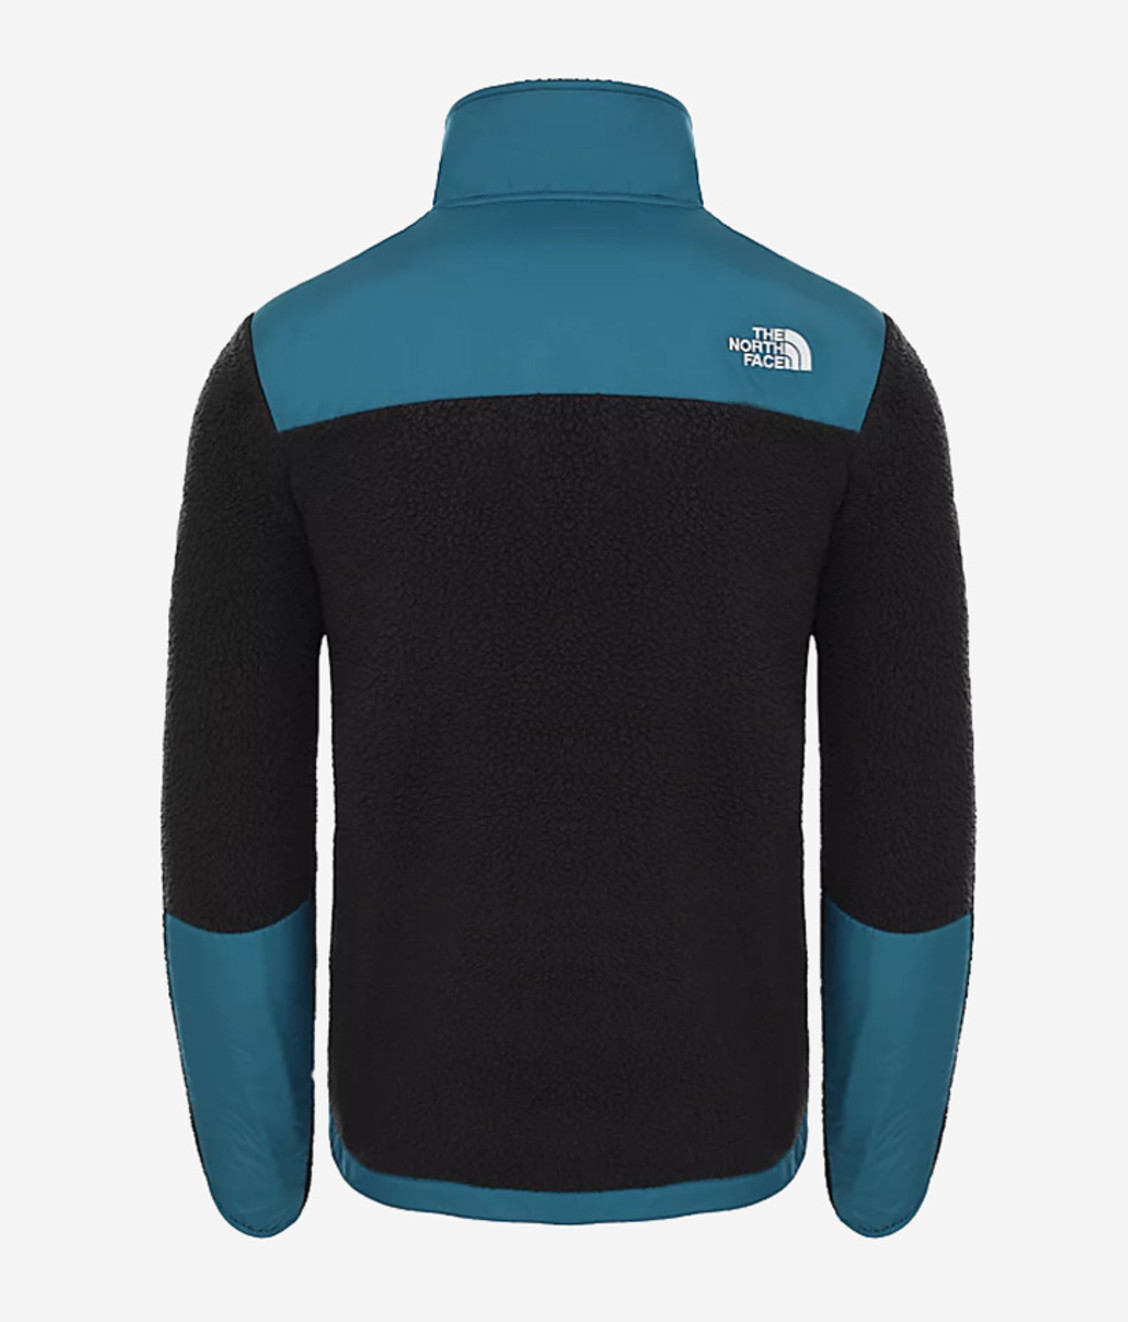 The North Face The North Face Denali Full Zip Fleece Blue Coral